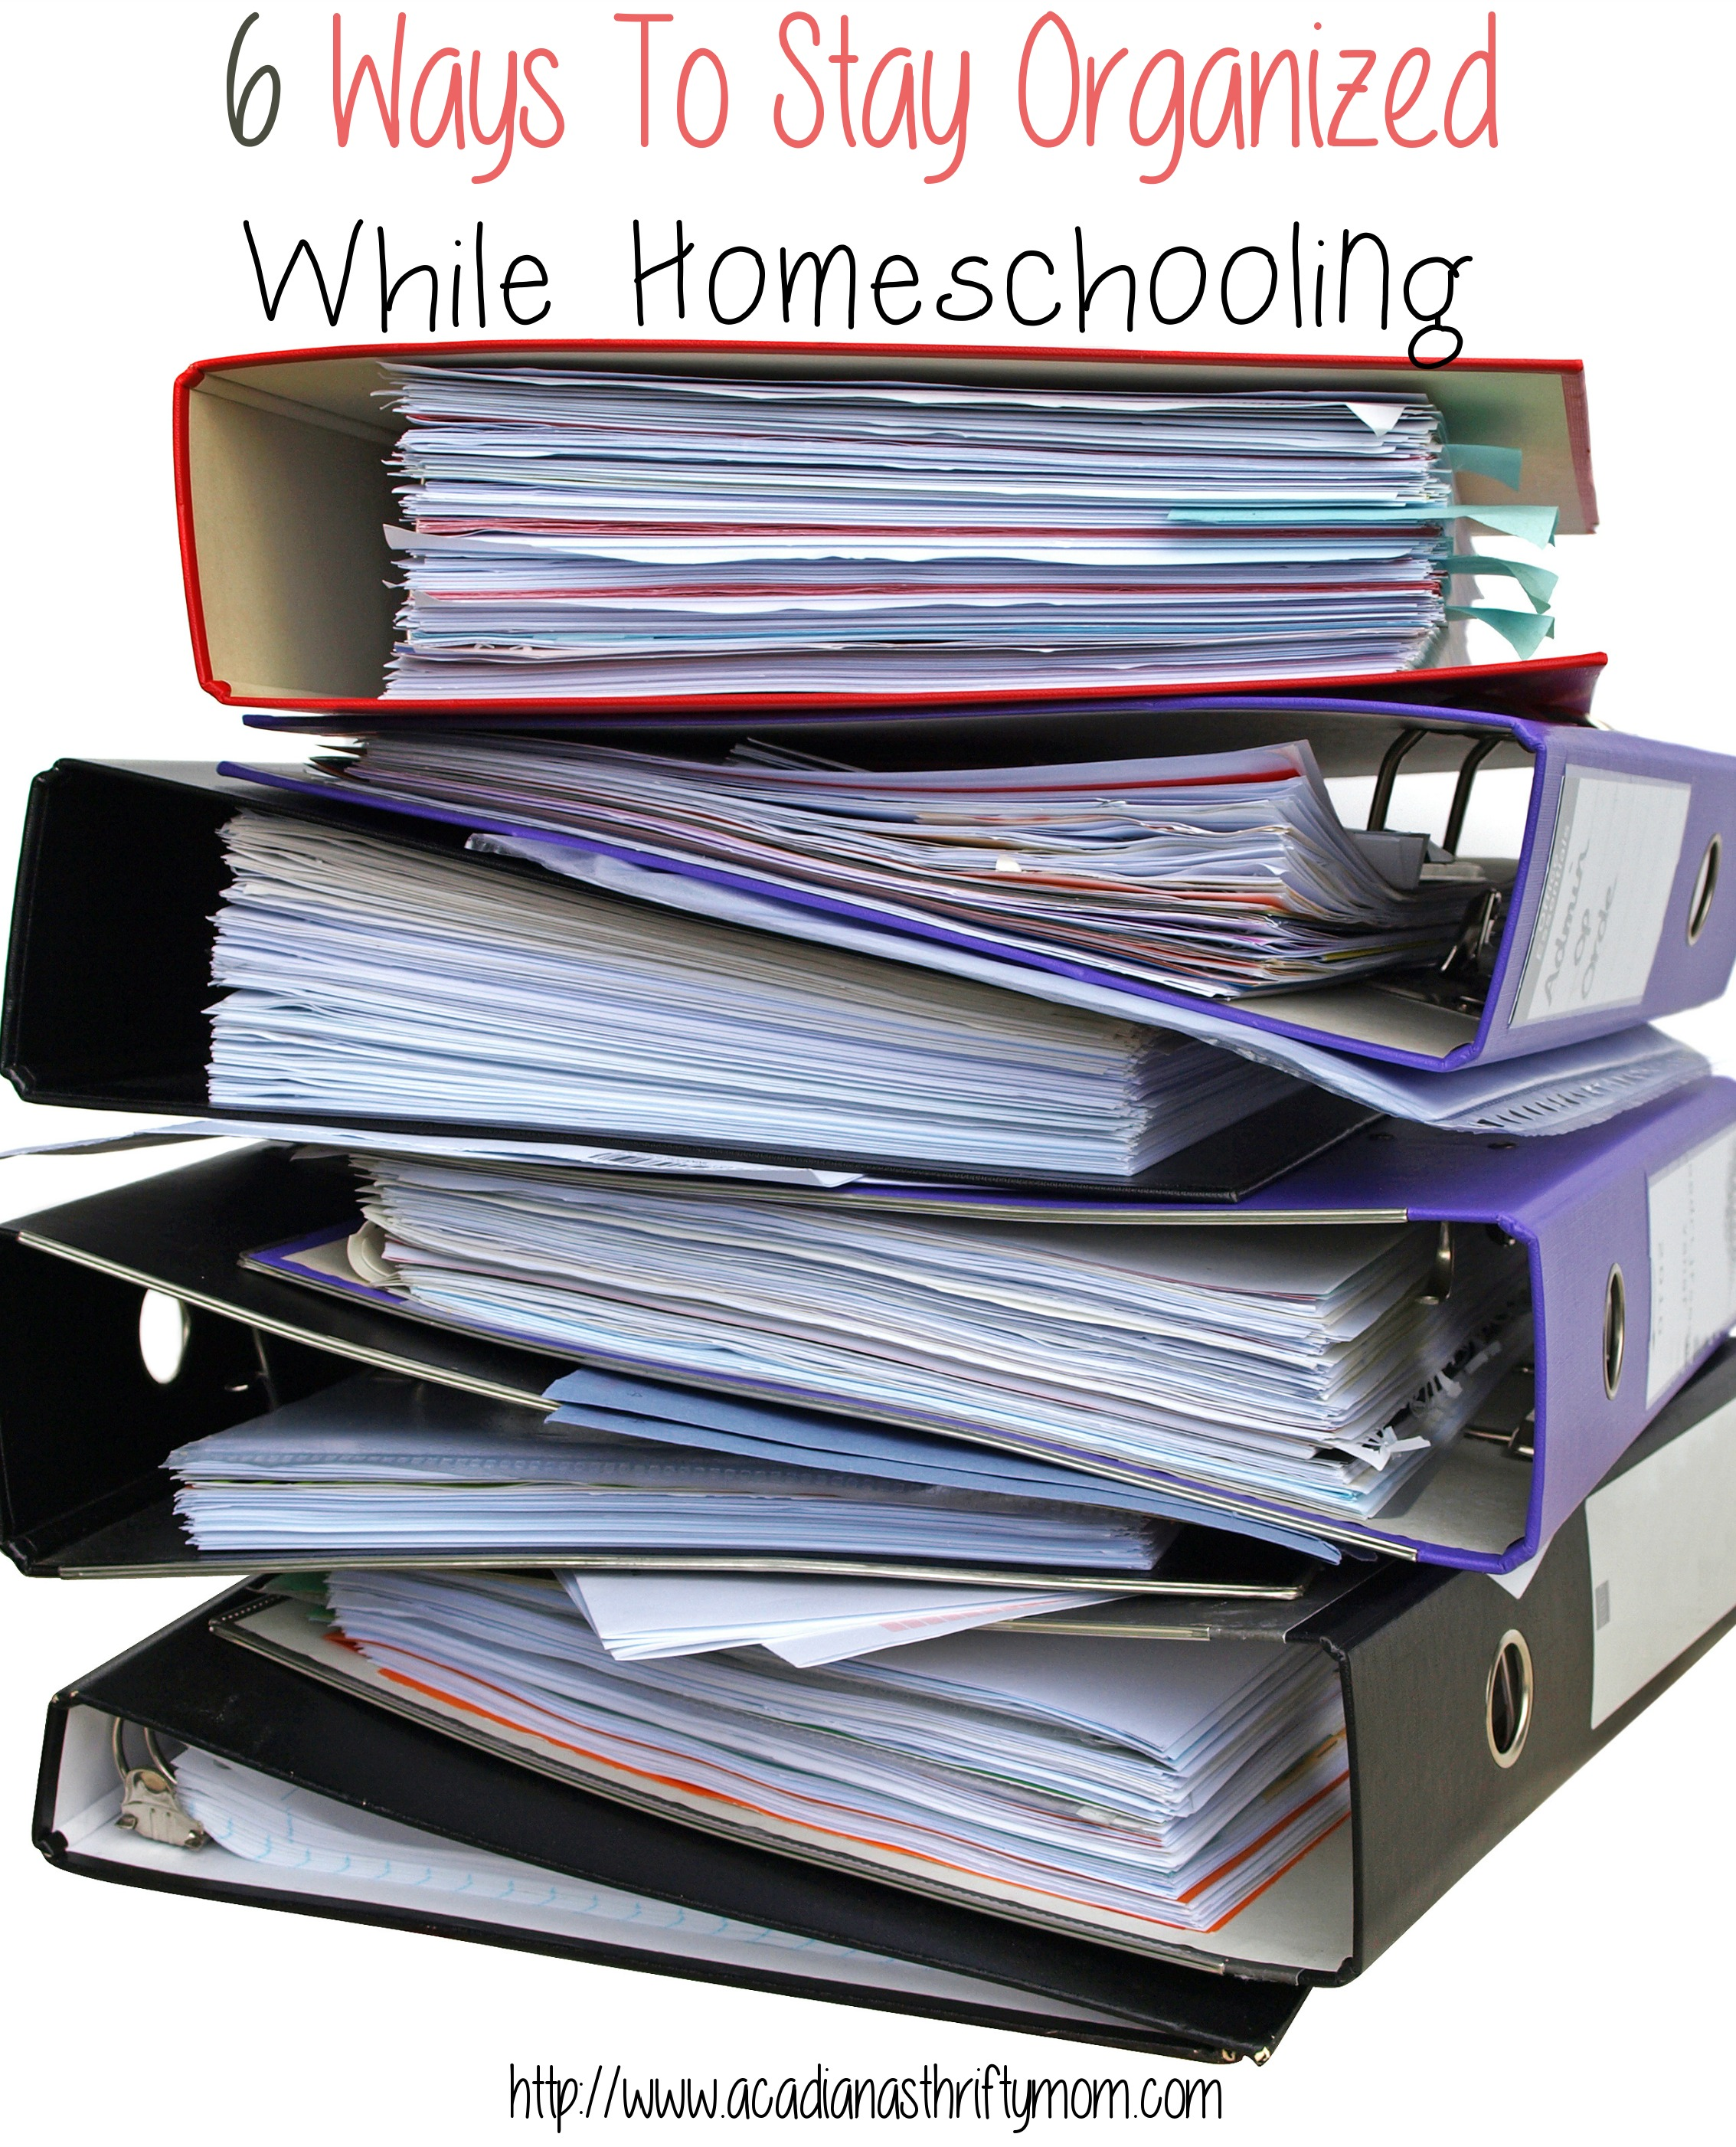 6 Ways To Stay Organized While Homeschooling